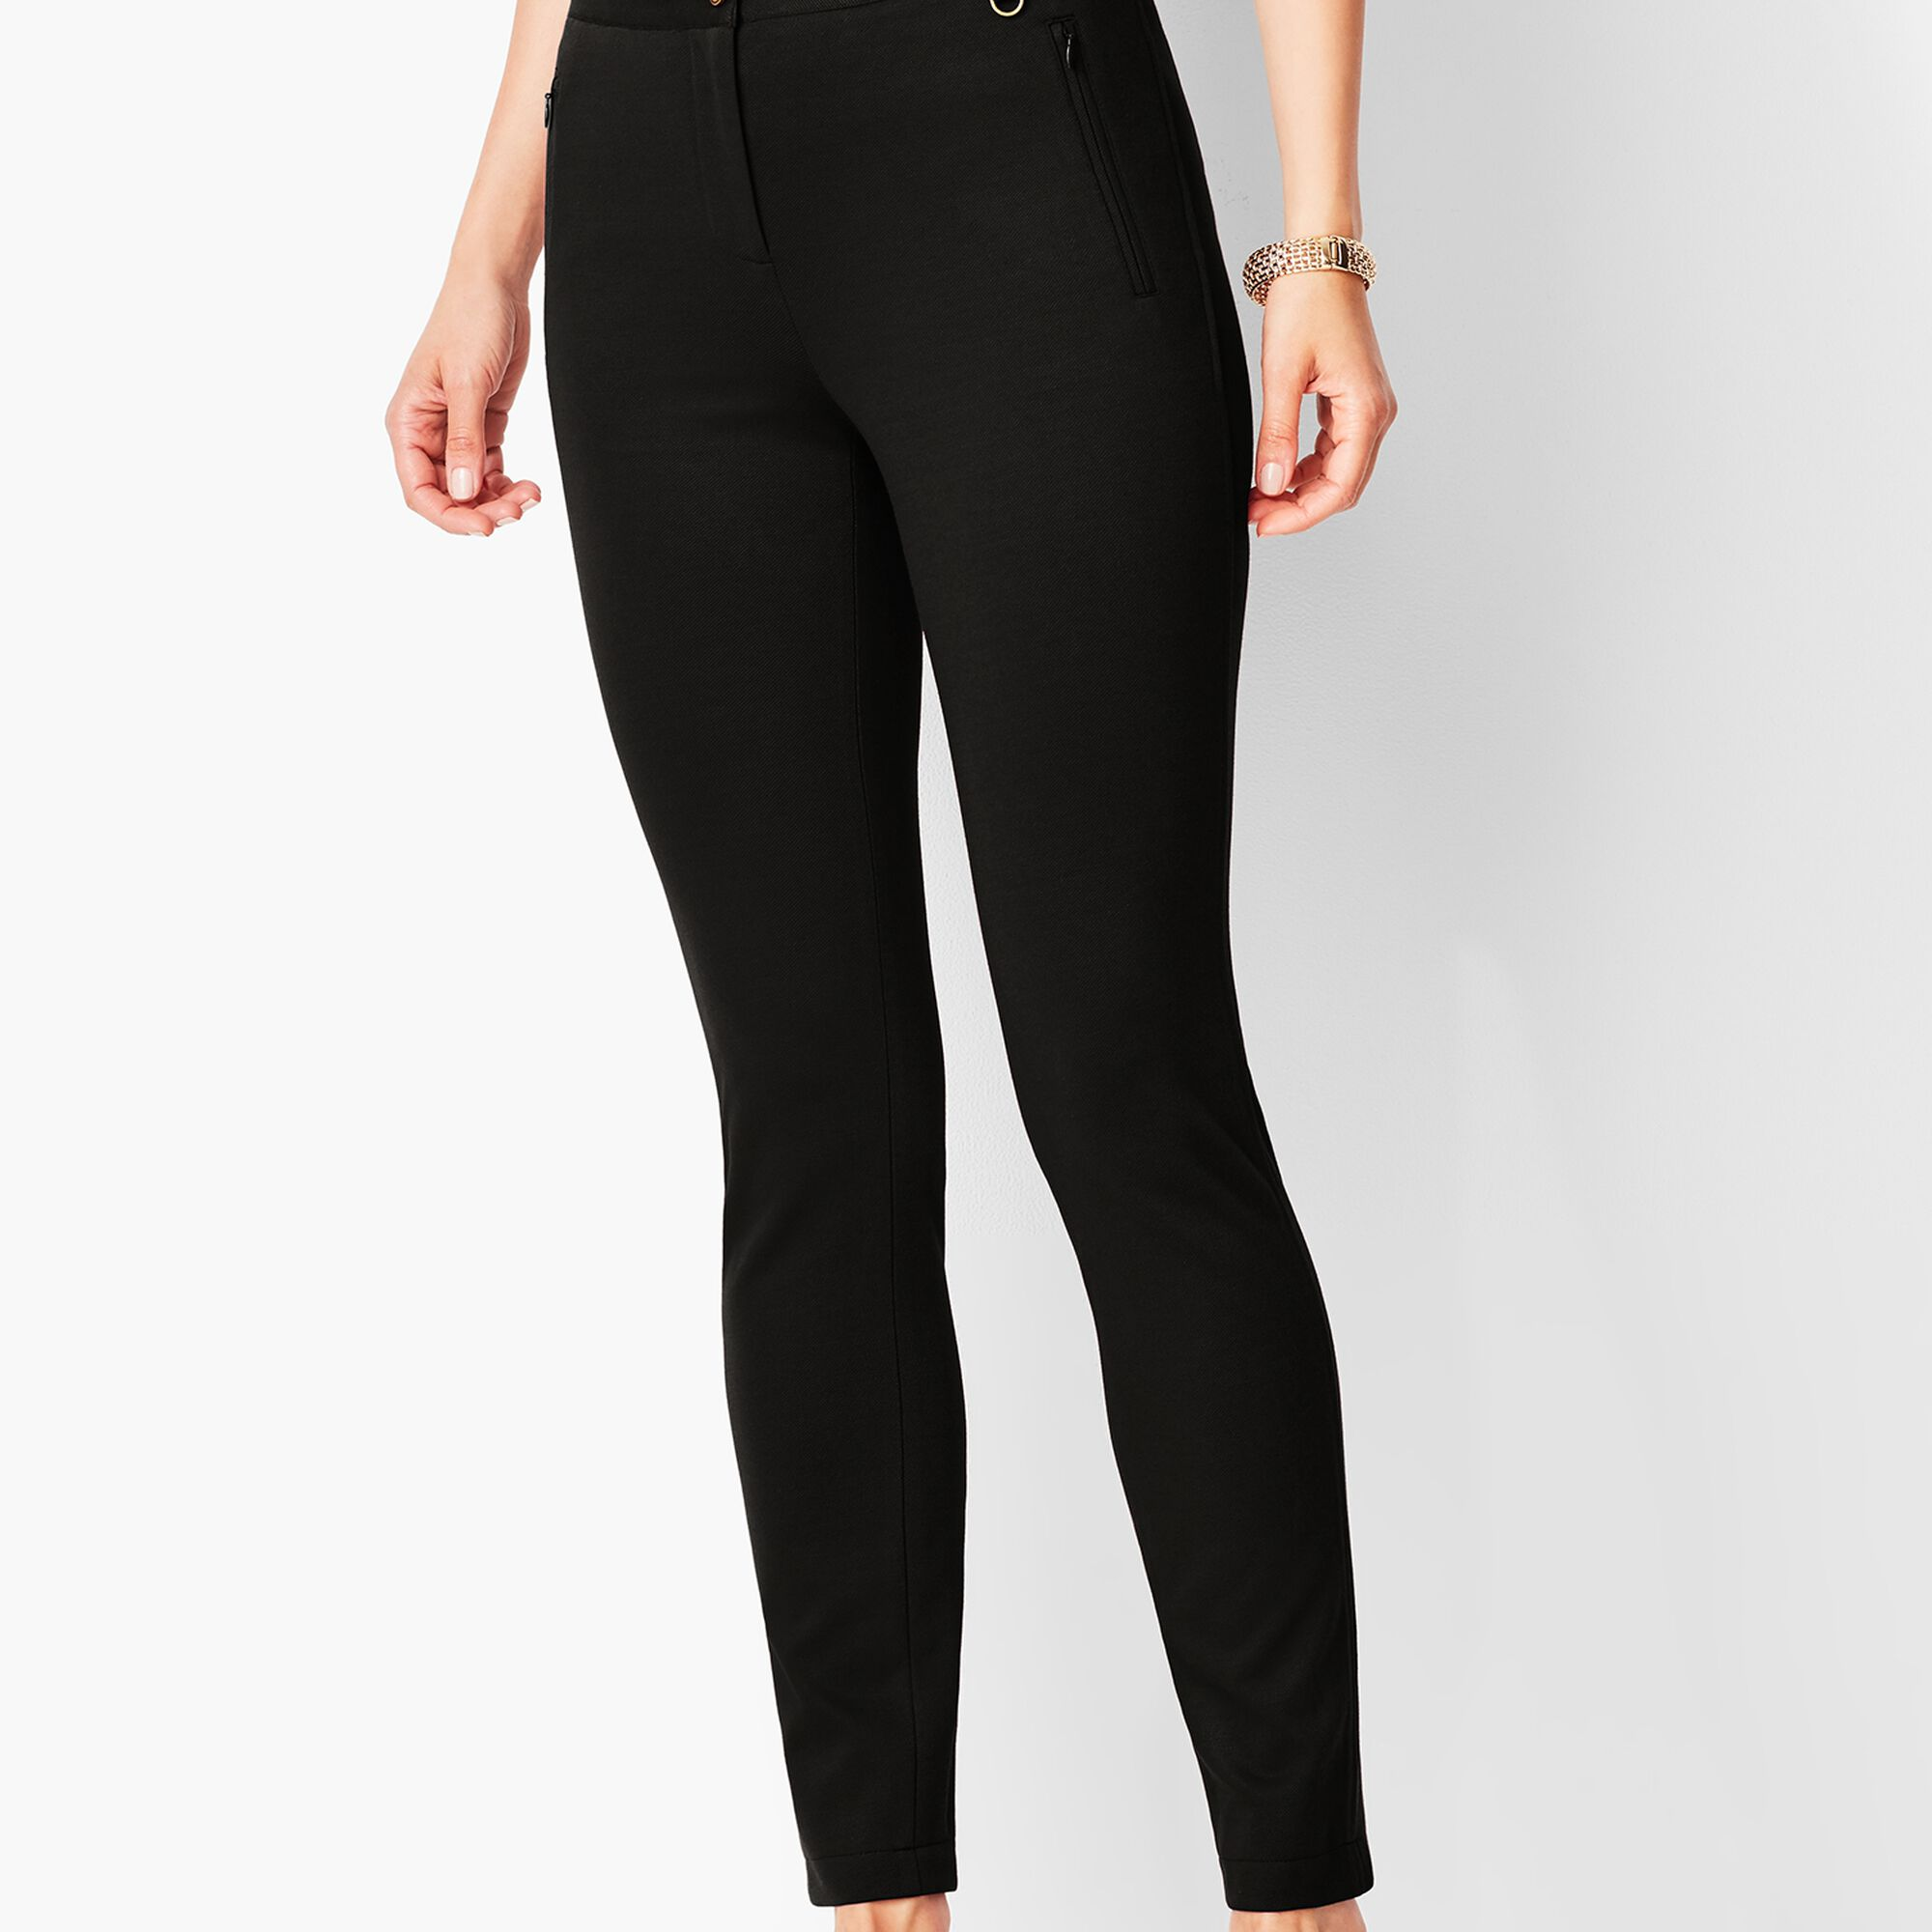 9a7e1d019c28f Textured Ponte Leggings Opens a New Window.